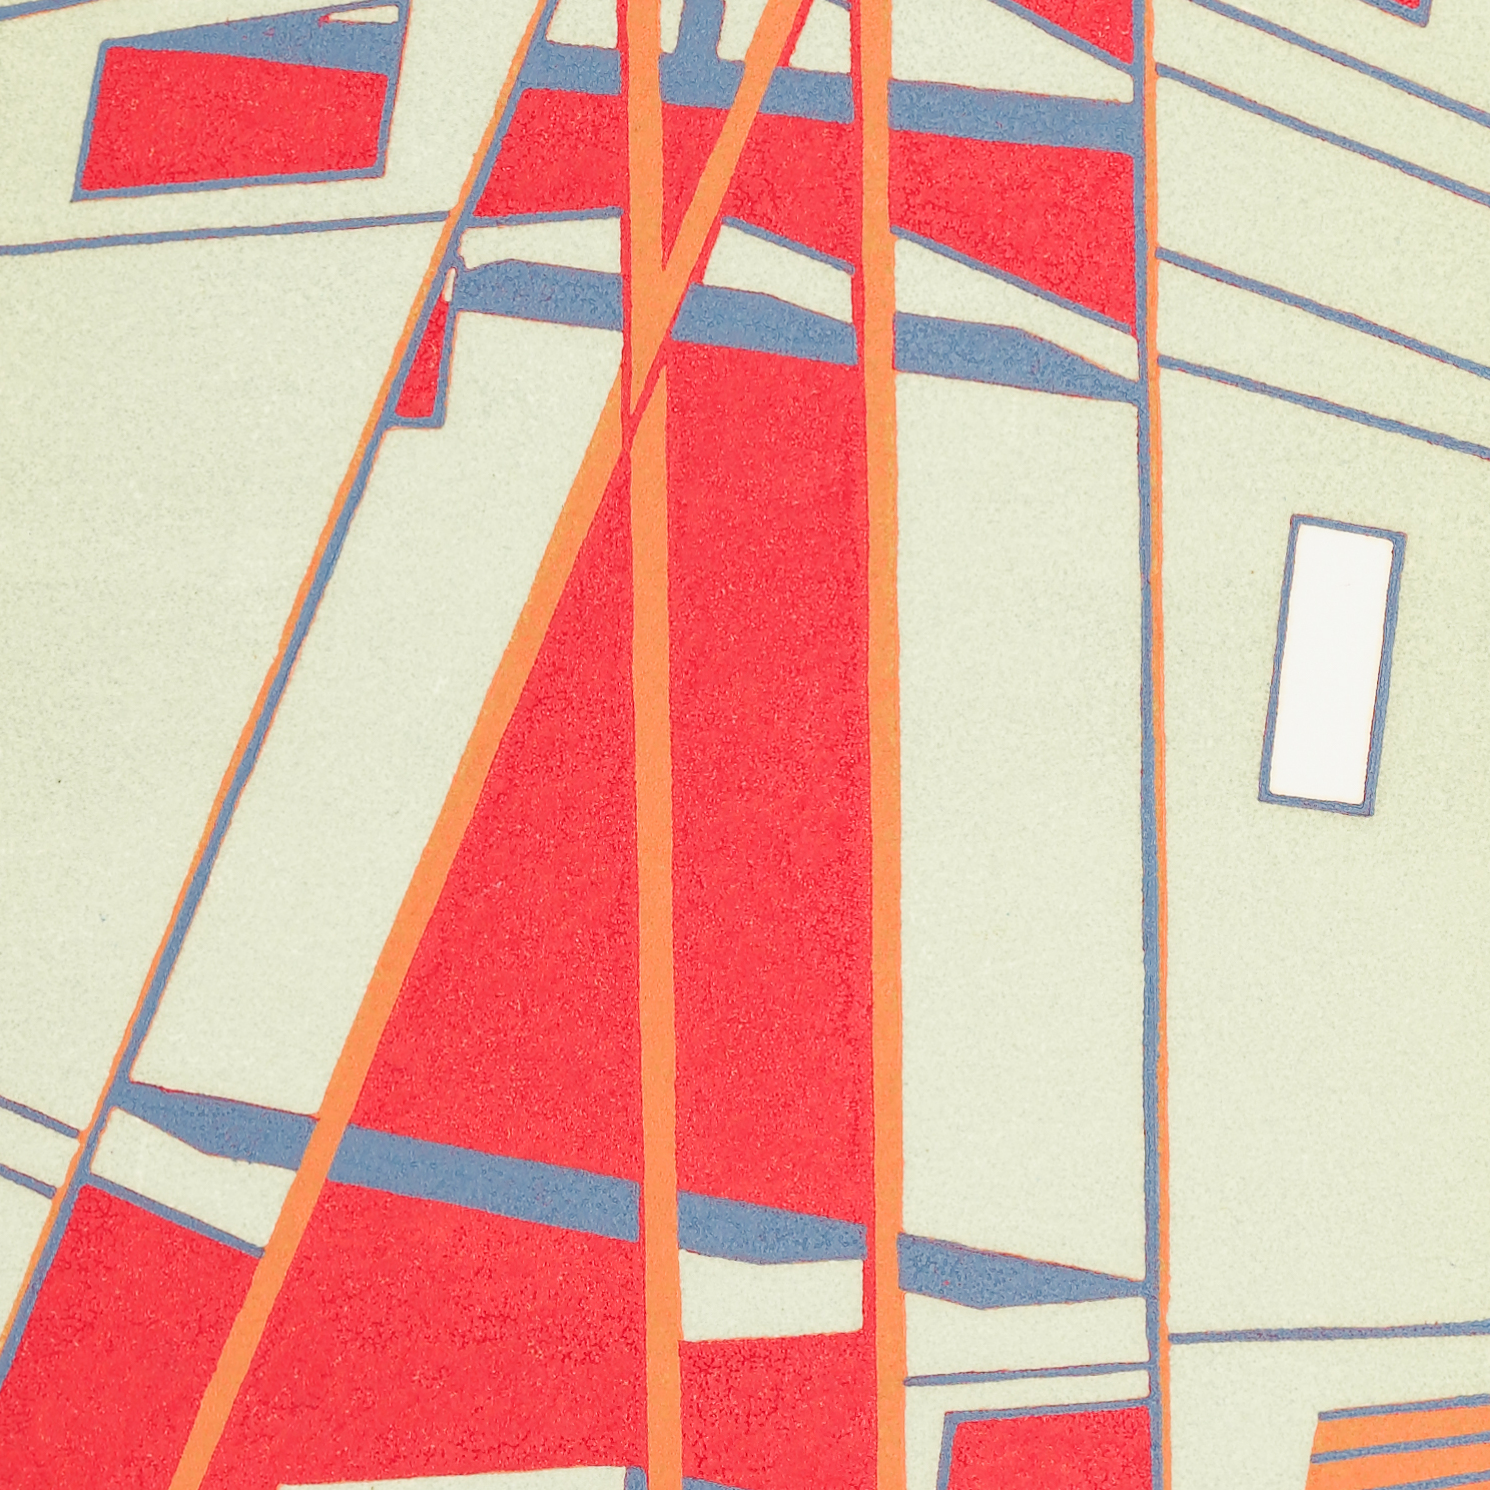 Close up section of an abstract wood reduction engraving showing geometric forms - bold red and orange areas stand out against more muted tones.